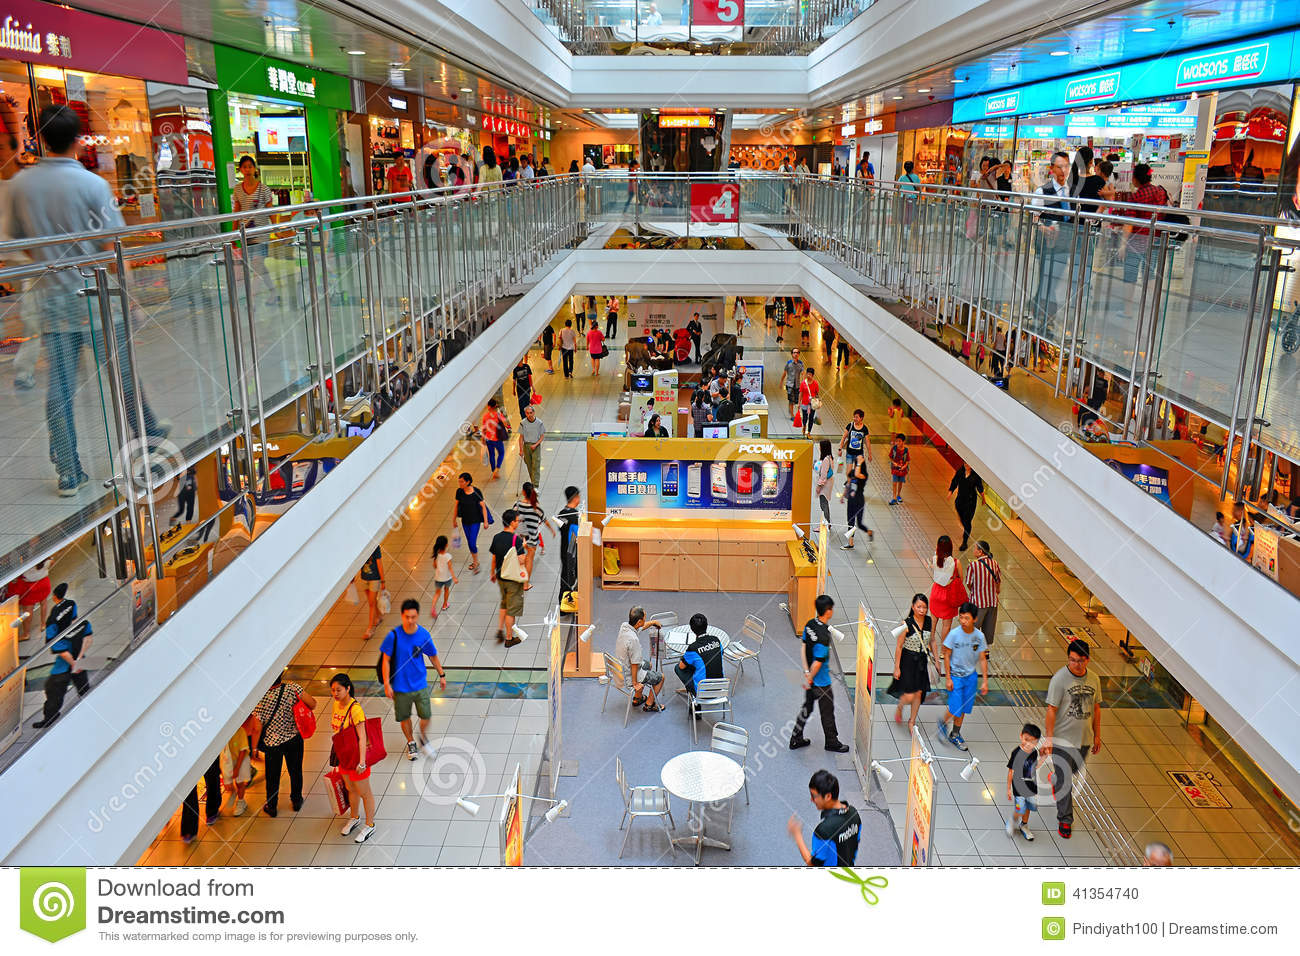 swot shopping mall and similar stalls This is swot index - press on s - w - o - t buttons - strengths, weaknesses, opportunities, threats swot analysis is a strategic method for identifying your small.